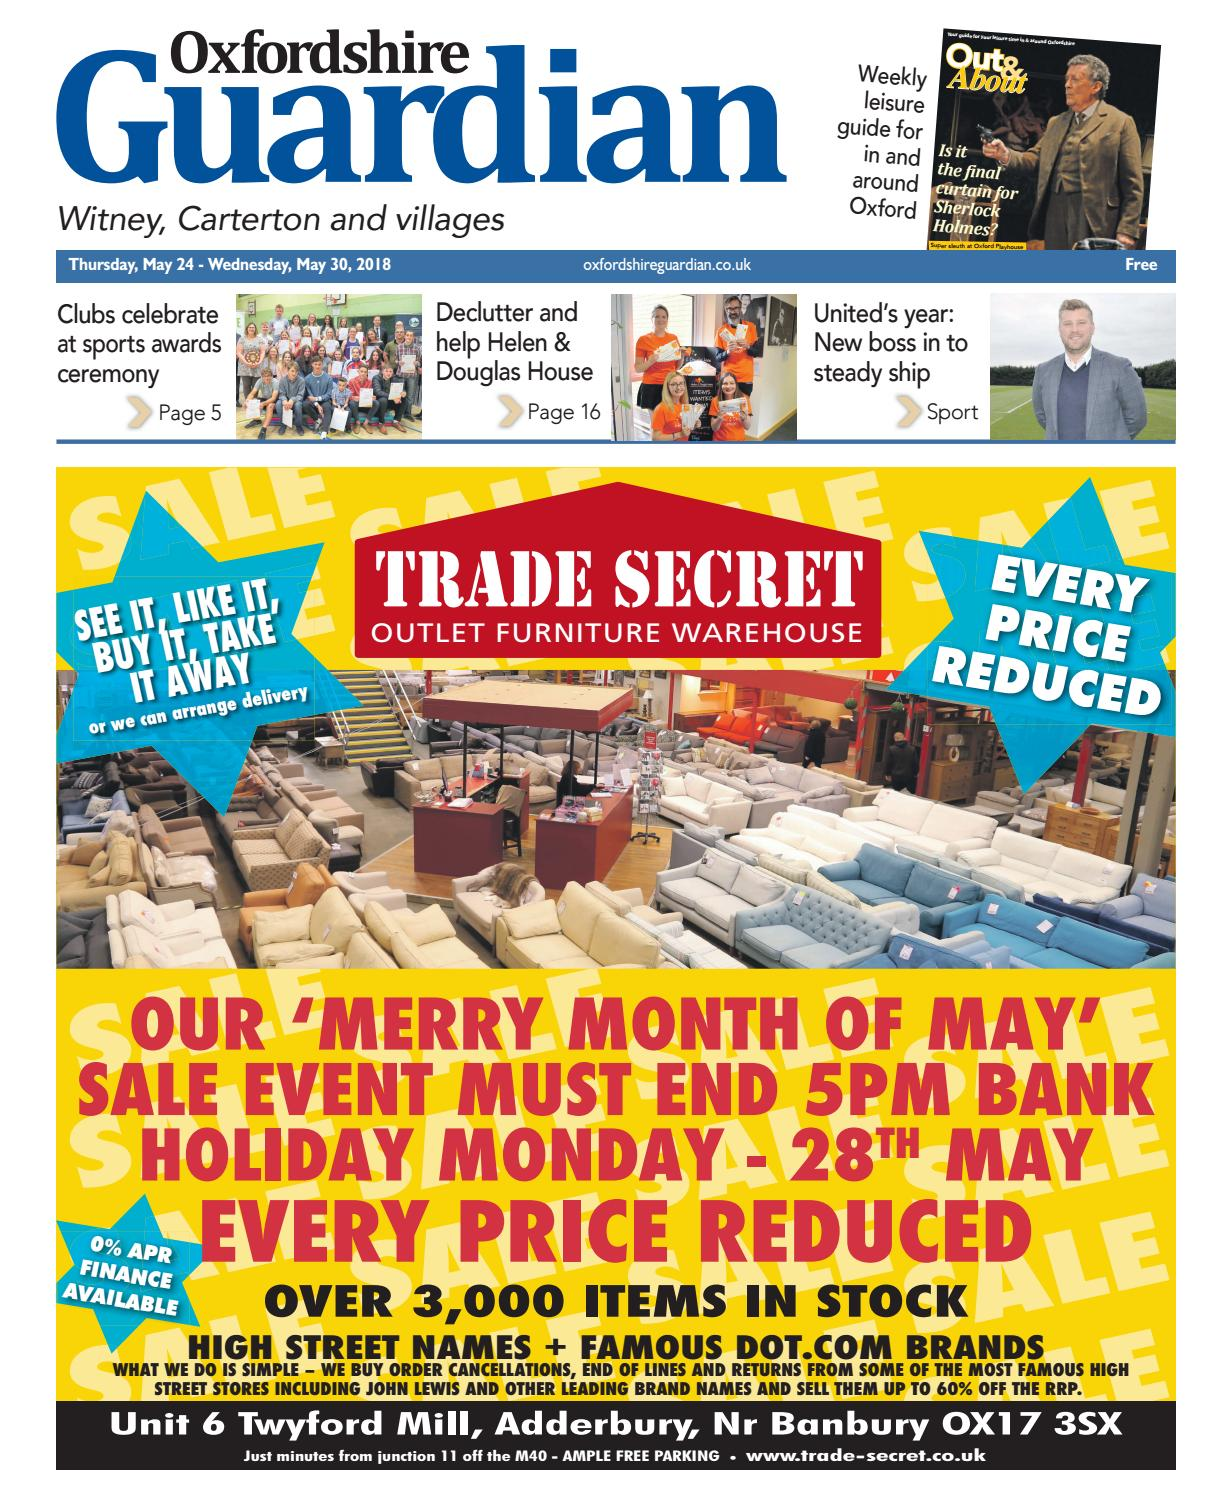 ab18c177a352 24 may 2018 oxfordshire guardian witney by Taylor Newspapers - issuu